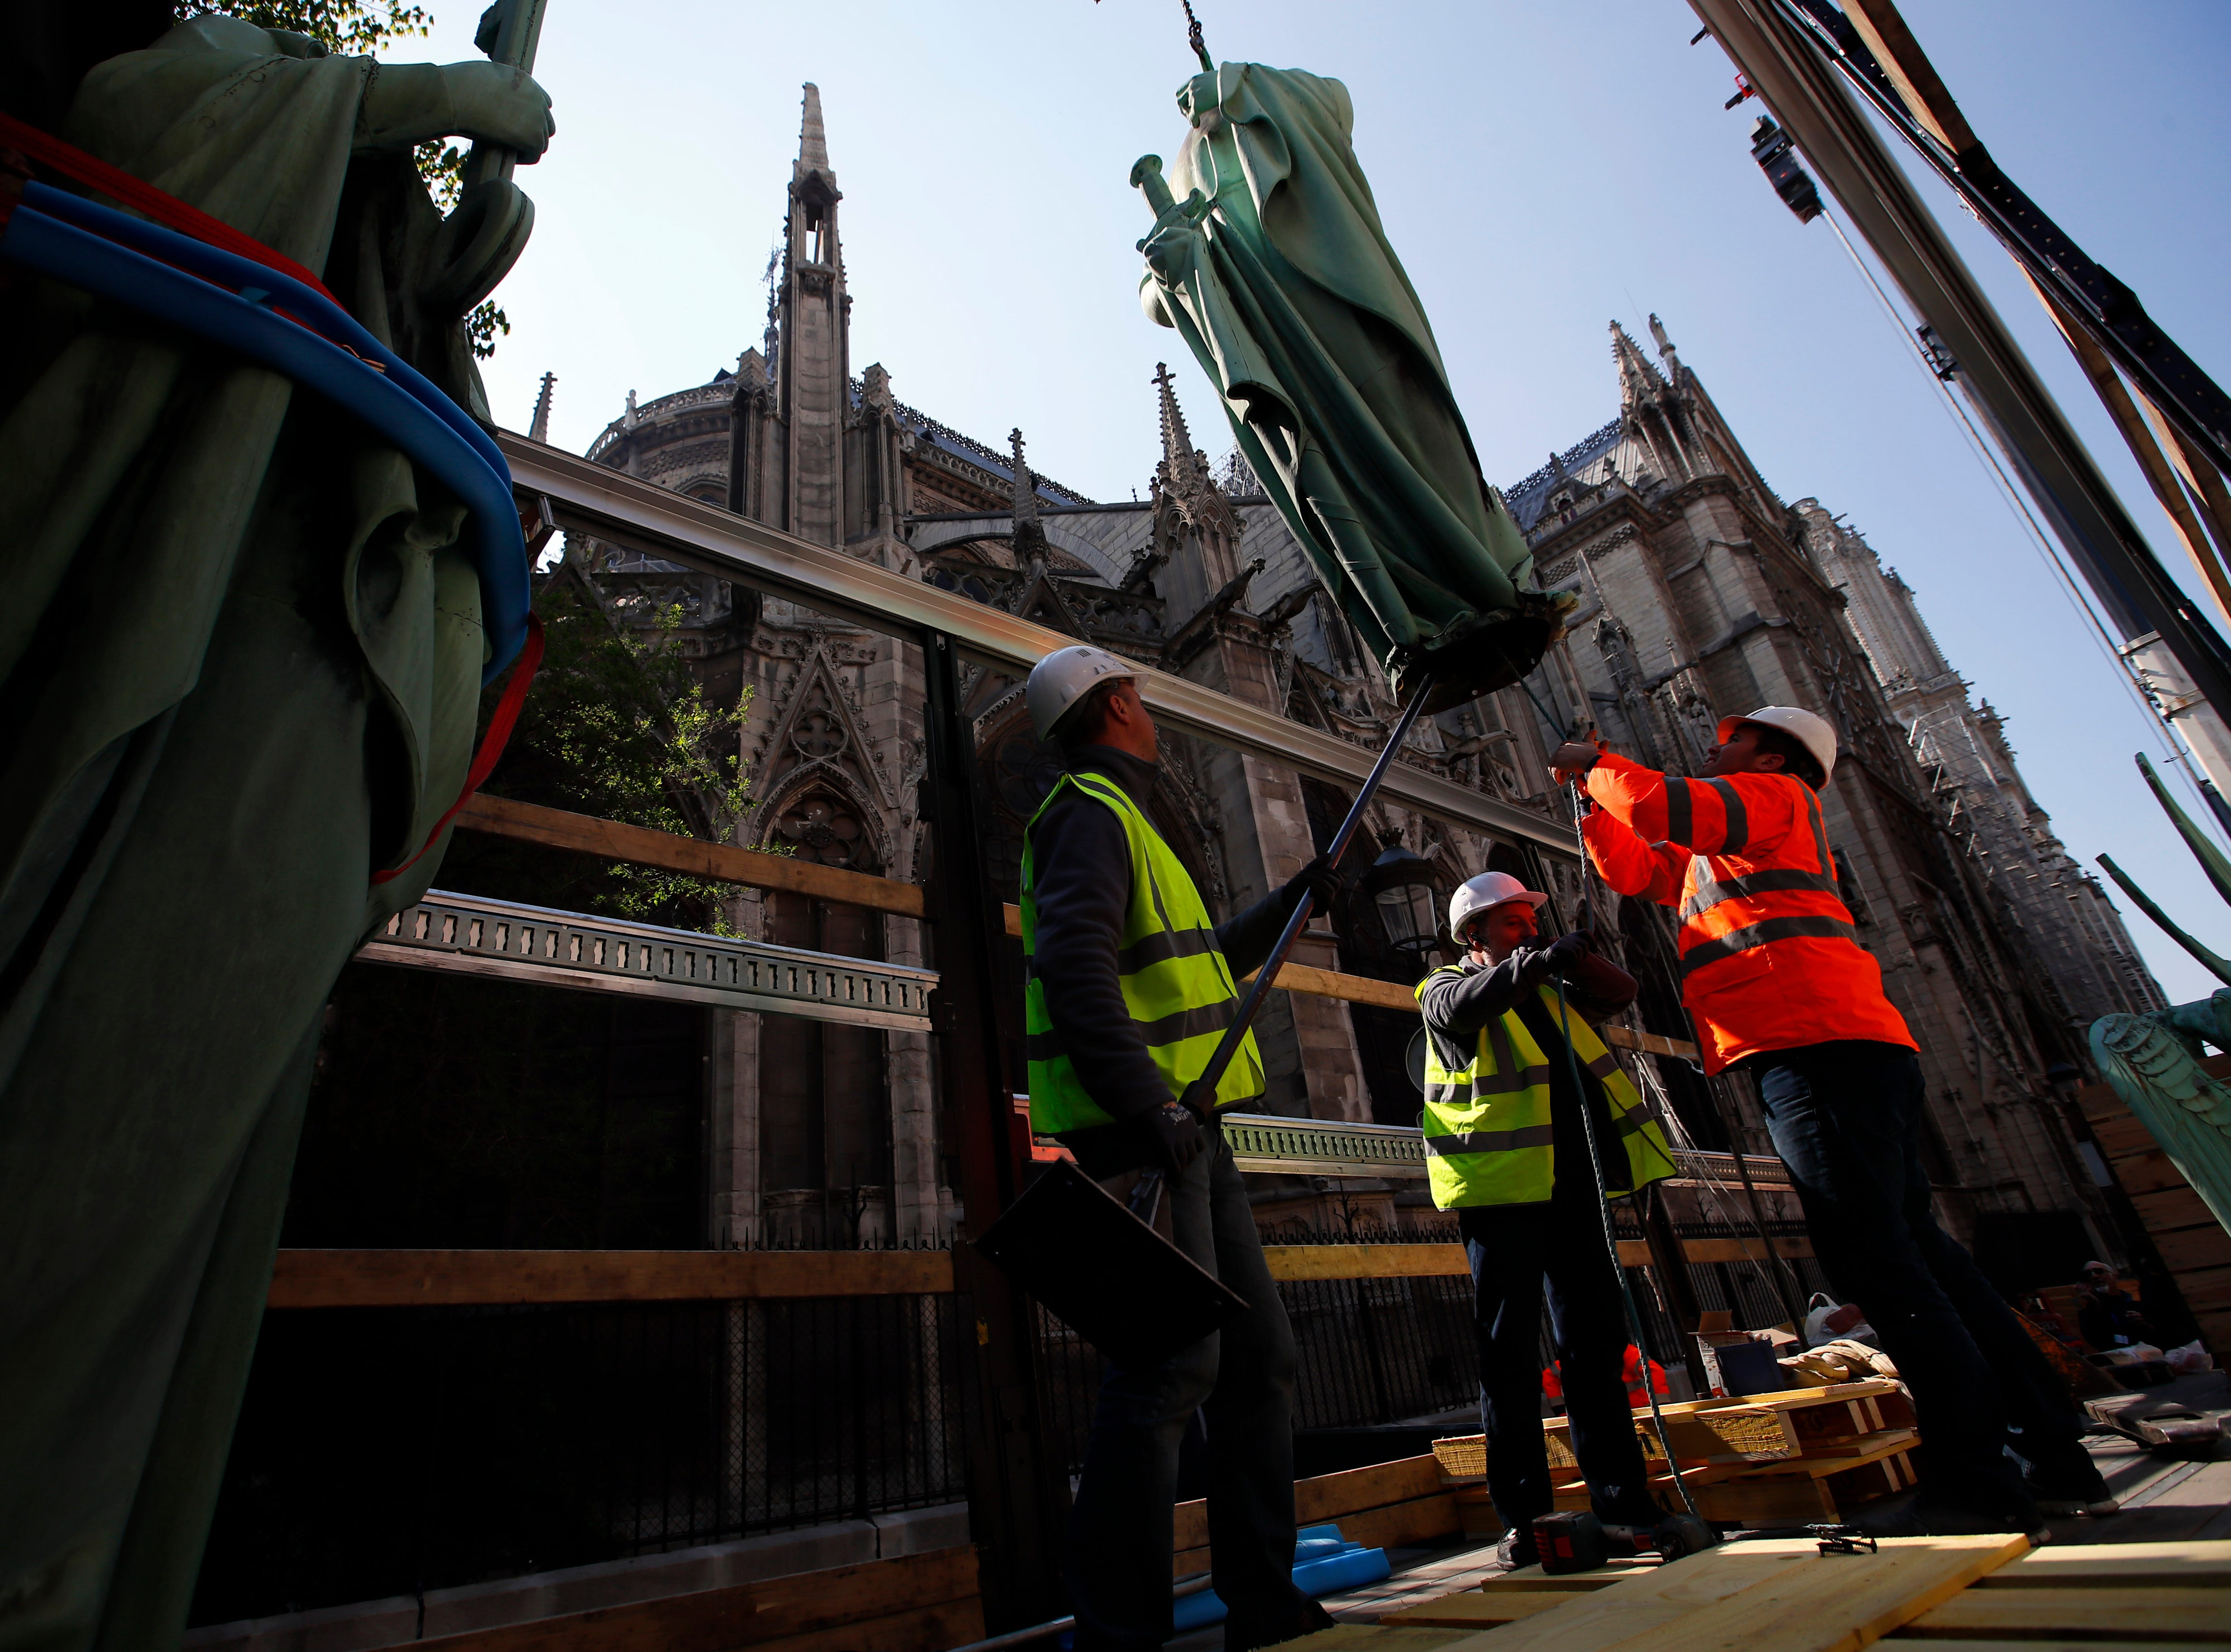 Workers secure a religious statue perched atop Paris' Notre Dame Cathedral as it descends to earth for the first time in over a century as part of a restoration, in Paris Thursday, April 11, 2019. The 16 greenish-gray copper statues, which represent the twelve apostles and four evangelists, are lowered by a 100 meter (105 yard) crane onto a truck to be taken for restoration in southwestern France.